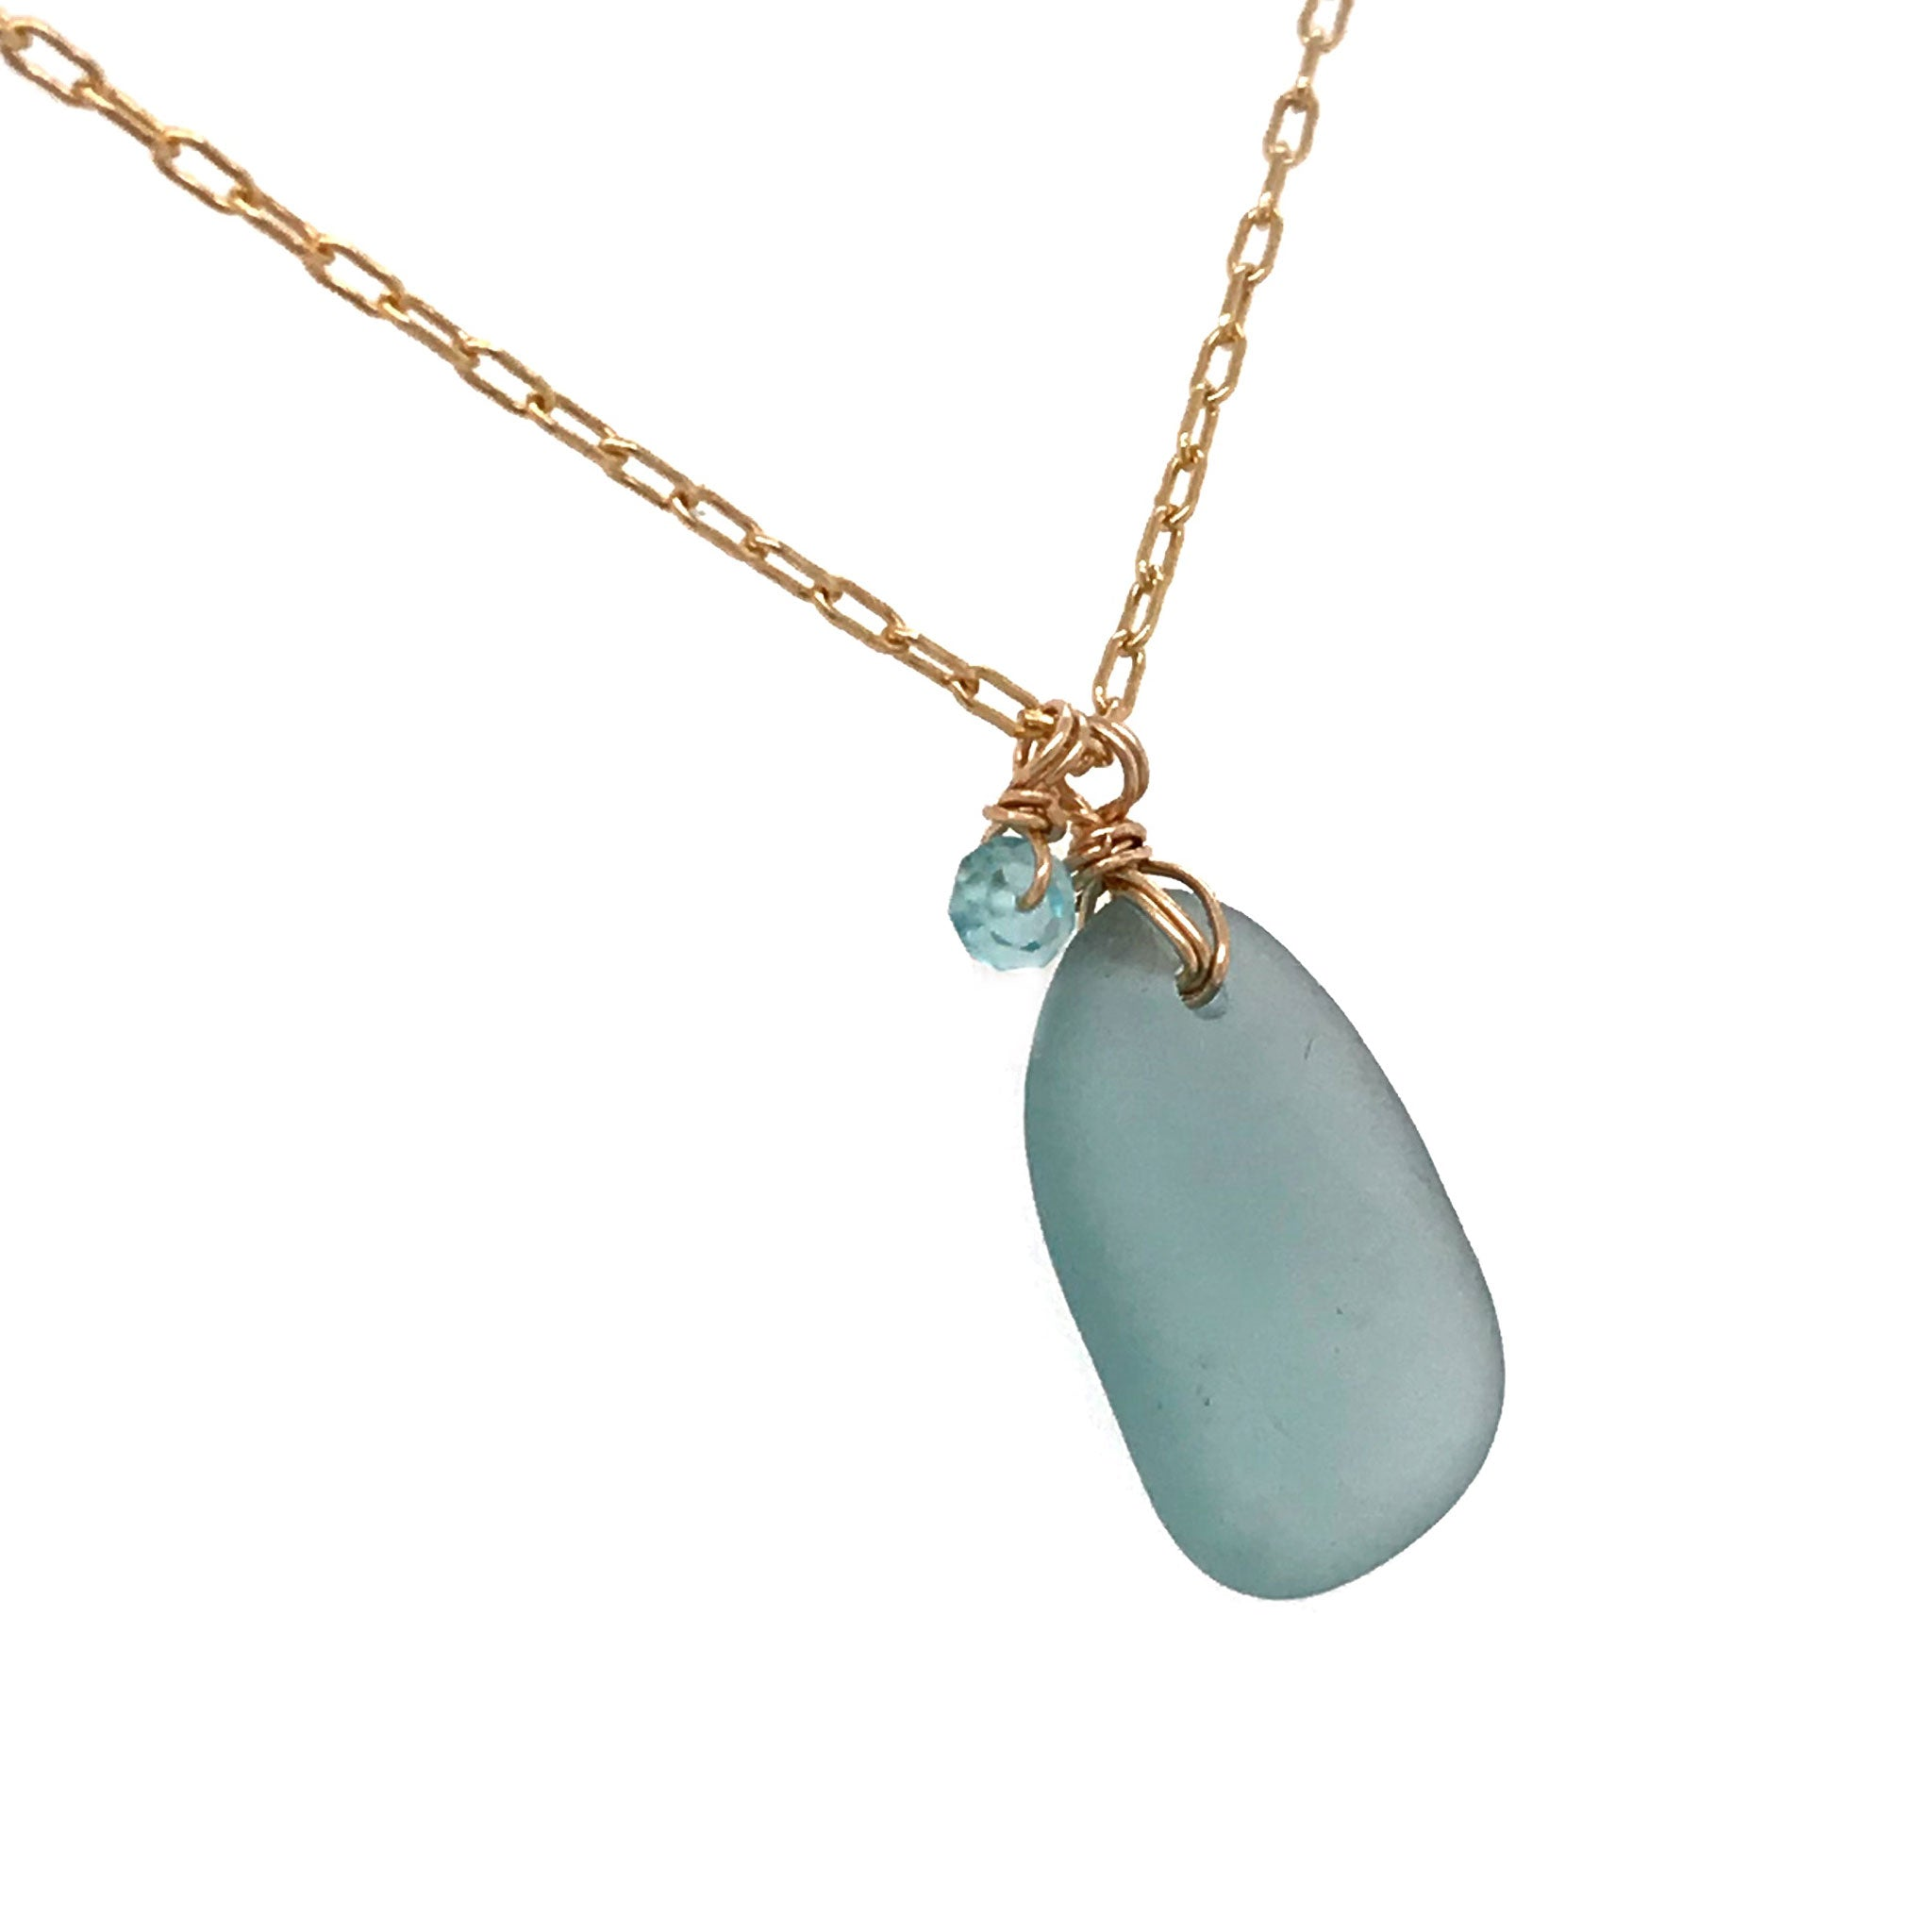 gold necklace with aqua seaglass and aquamarine stones Kriket broadhurst jewellery